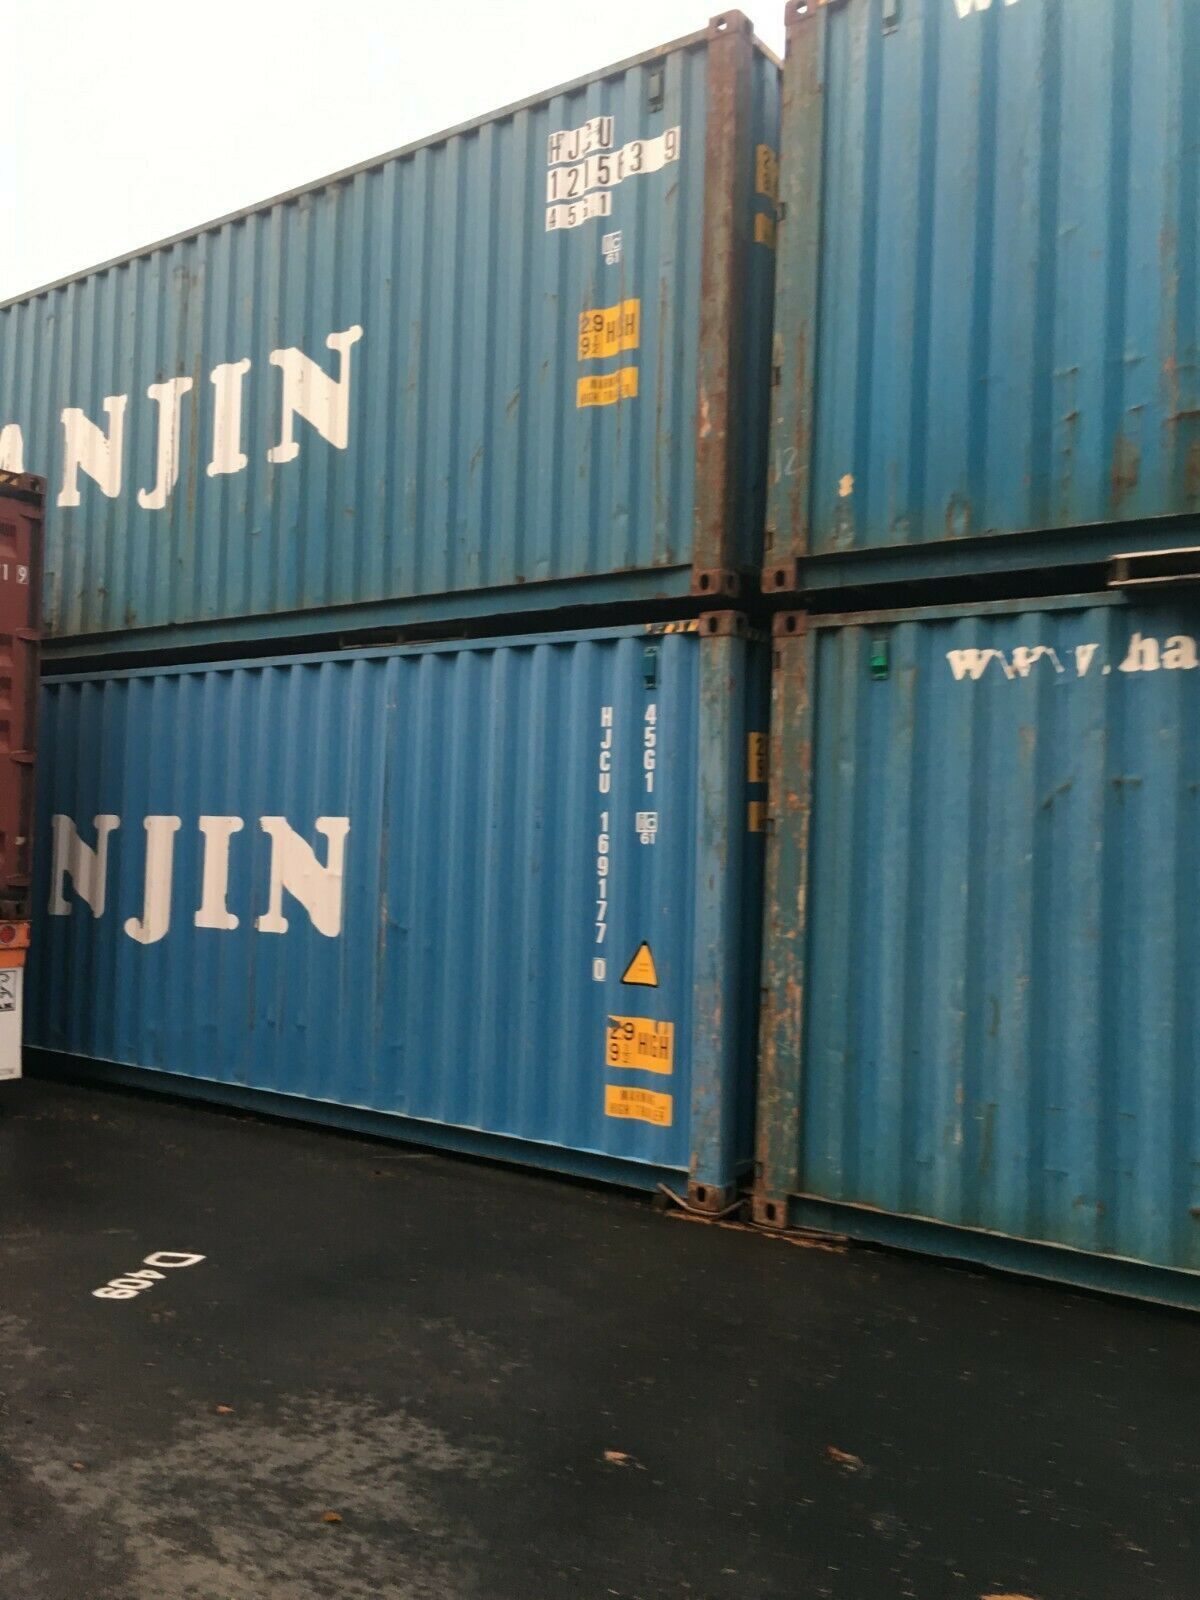 20 Ft Shipping Container in 2020 Shipping container